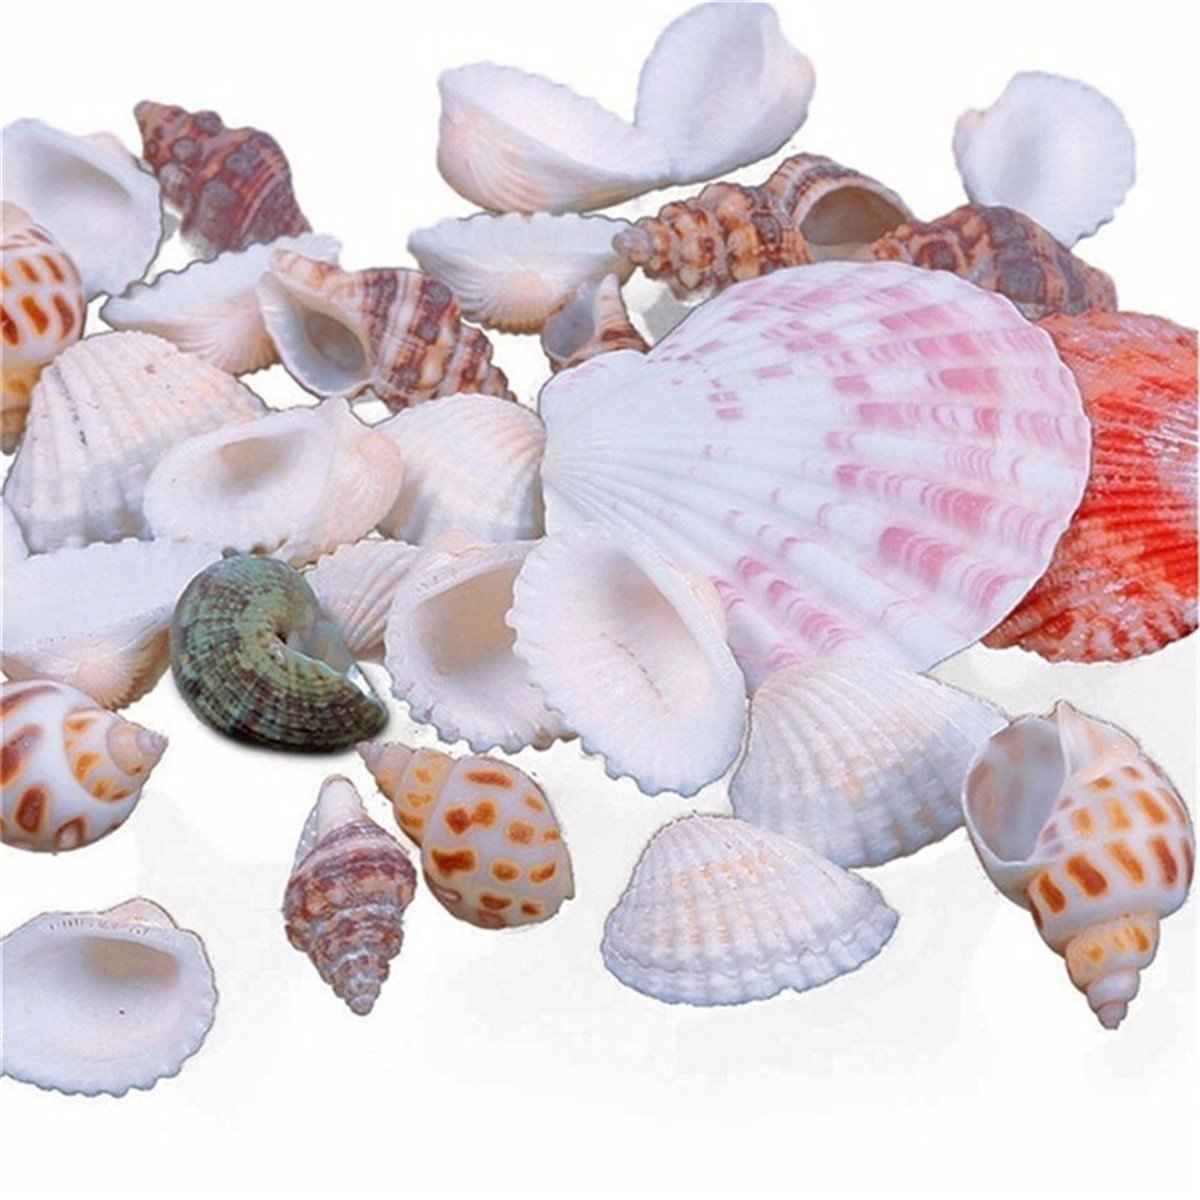 LKXHarleya 100g Sea Shells Mixed Beach Seashells for Crafts Various Assorted Sizes Seashells Bulk for Jewelry Making,Window Curtains,Party Wedding Decor and Vase Fillers